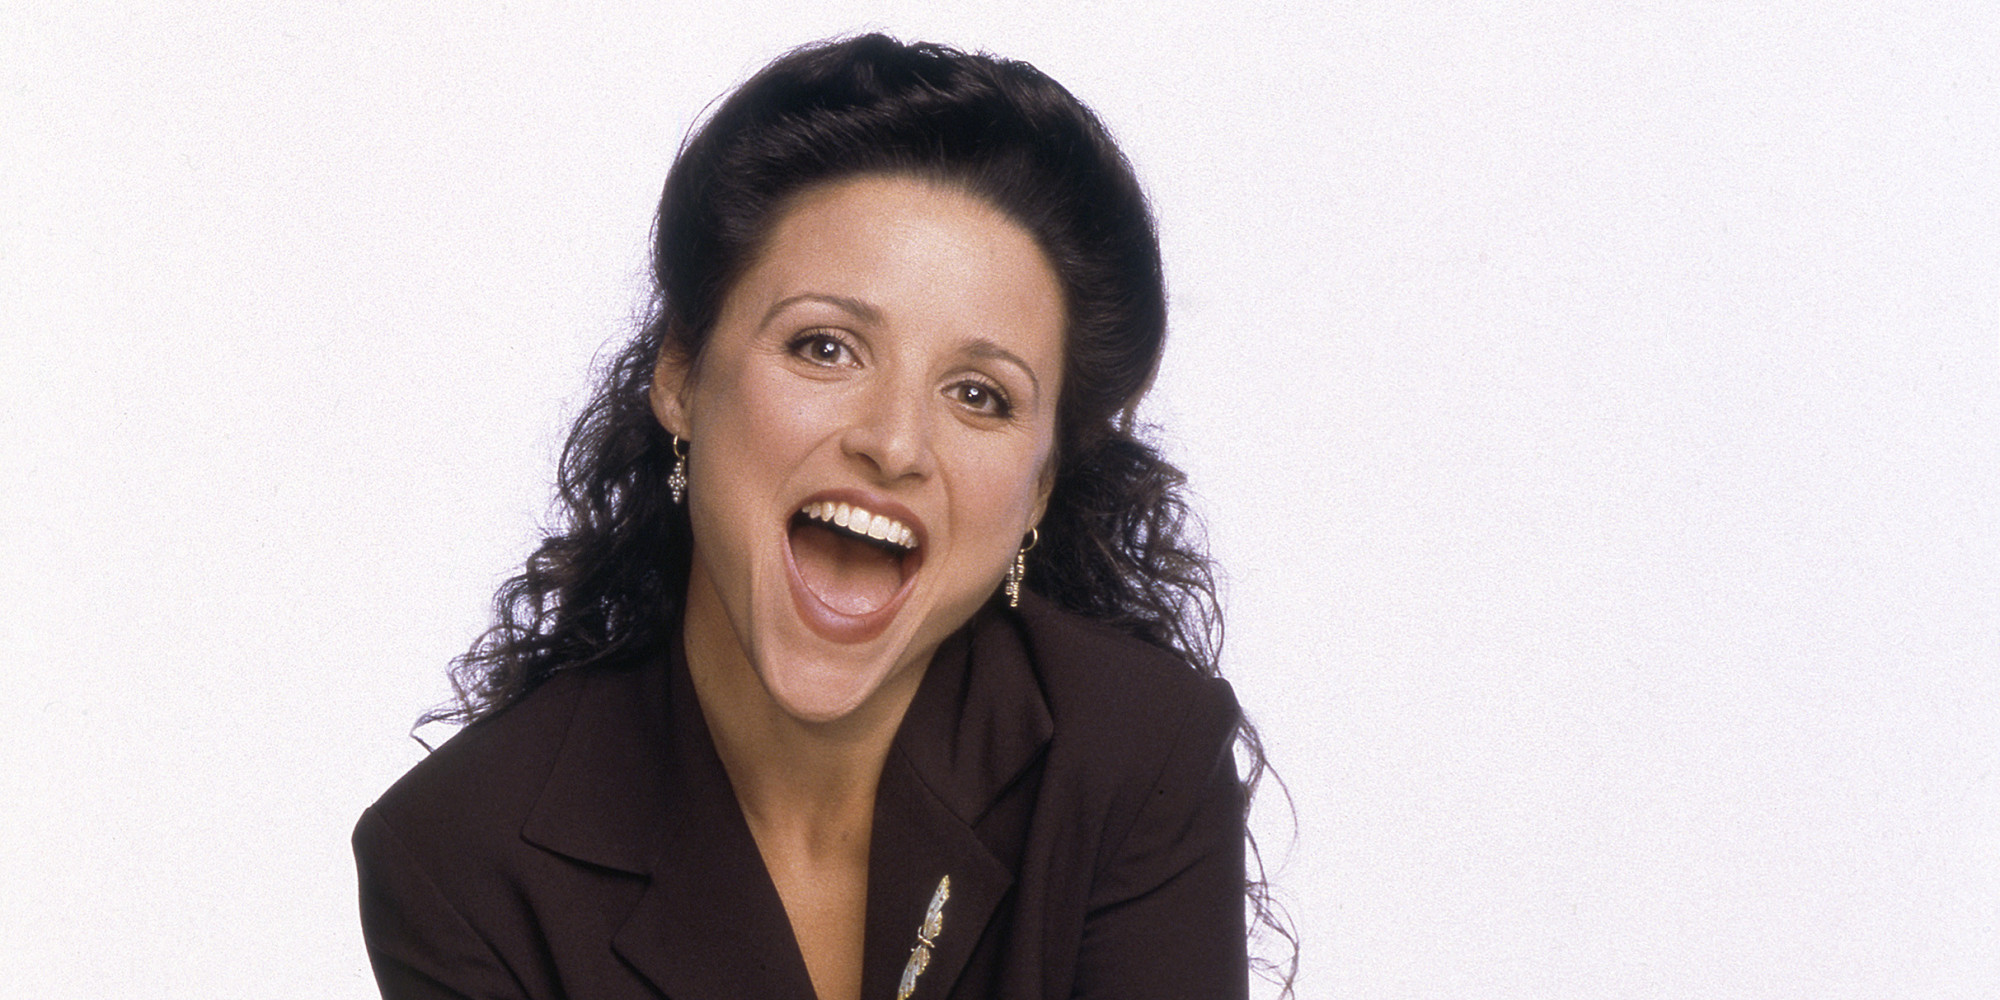 Elaine benes heroes wiki fandom powered by wikia for Where did julia louis dreyfus go to college